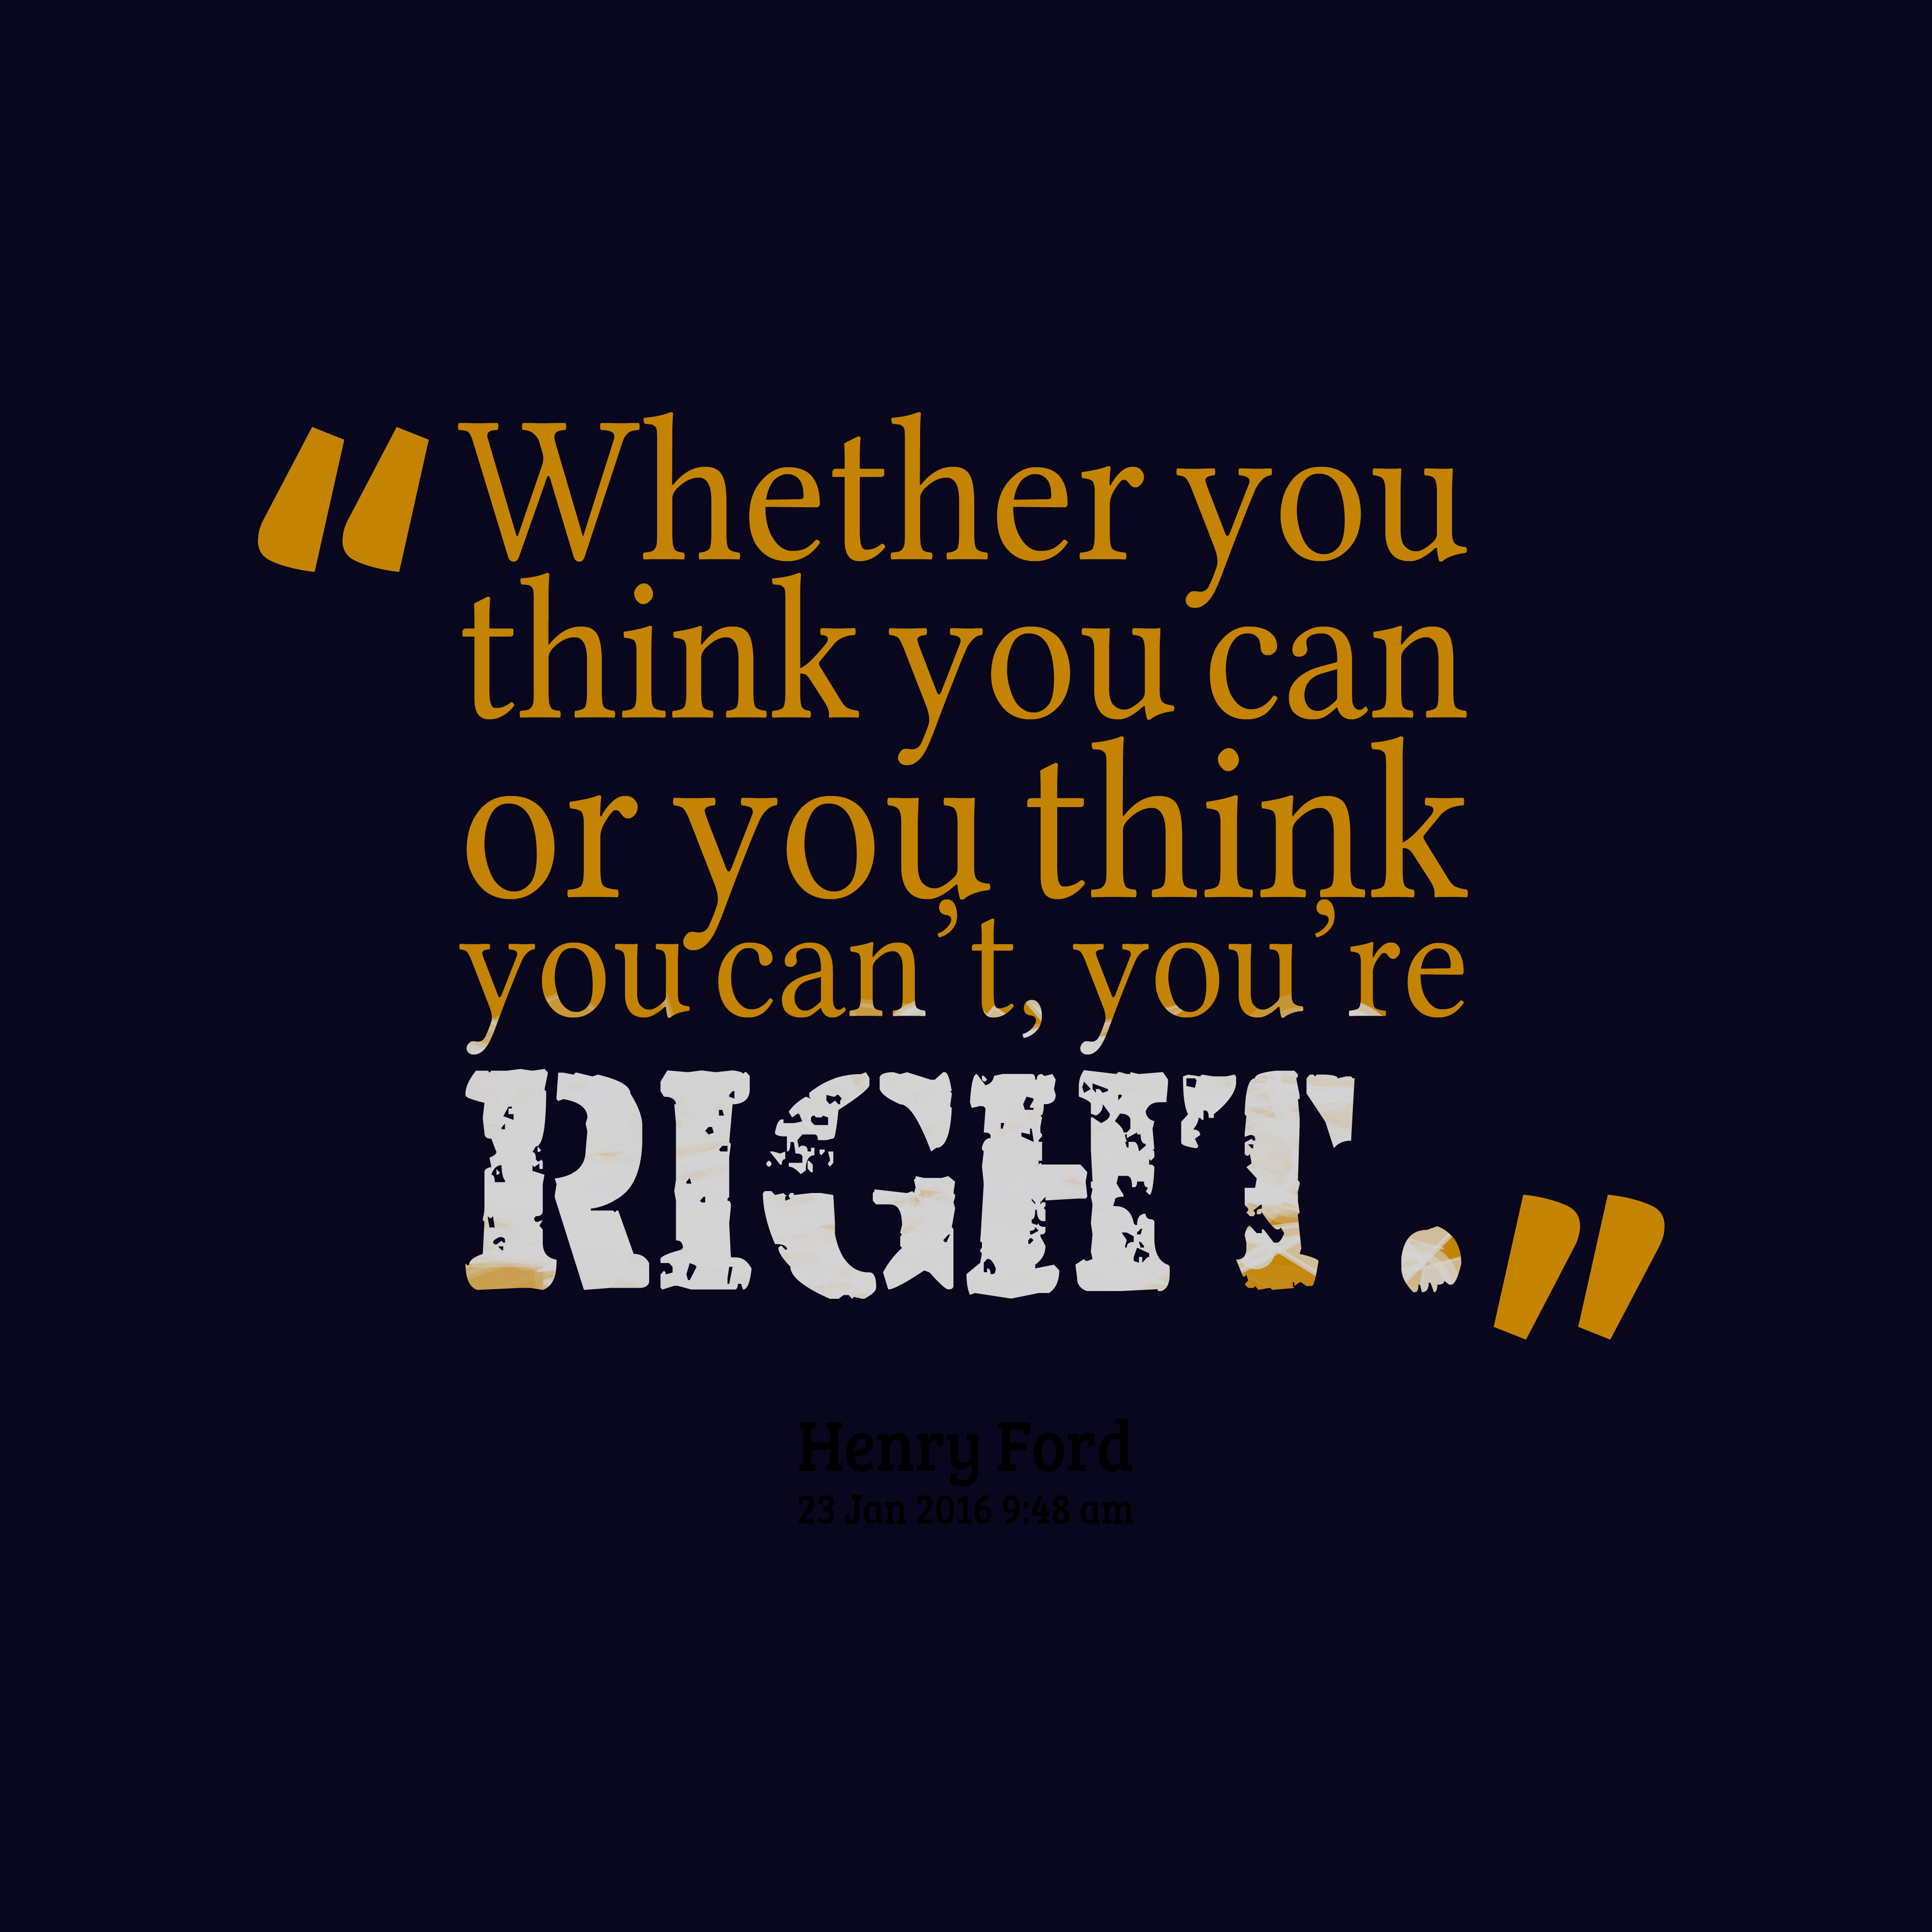 You Think Quotes: Get High Resolution Using Text From Henry Ford Quote About